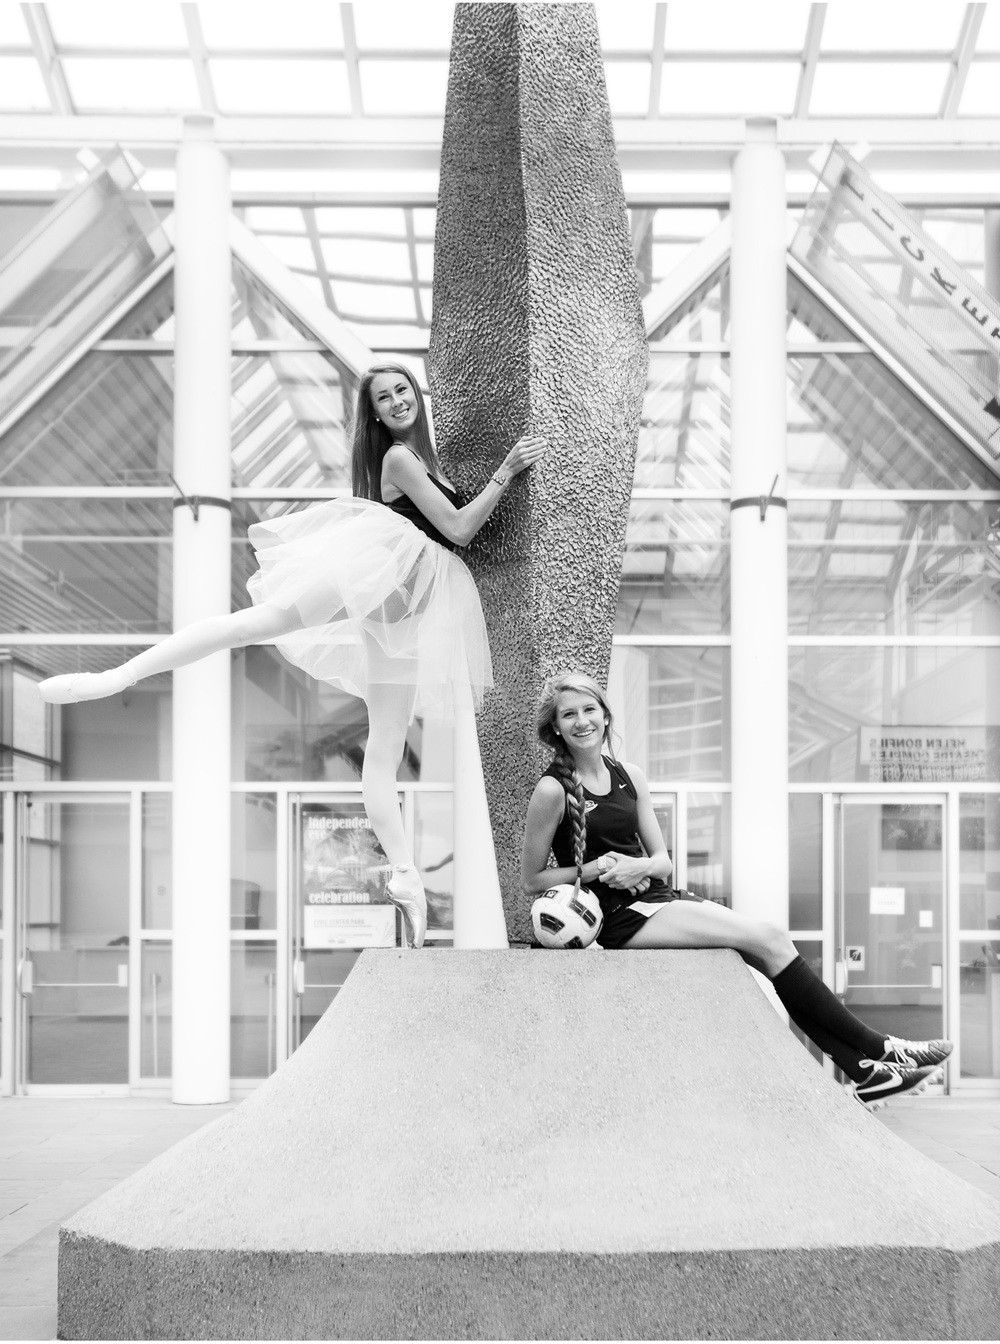 Downtown Denver cousins senior pictures featuring a ballerina and soccer player with photographer Jennifer Koskinen, Merritt Portrait Studio.